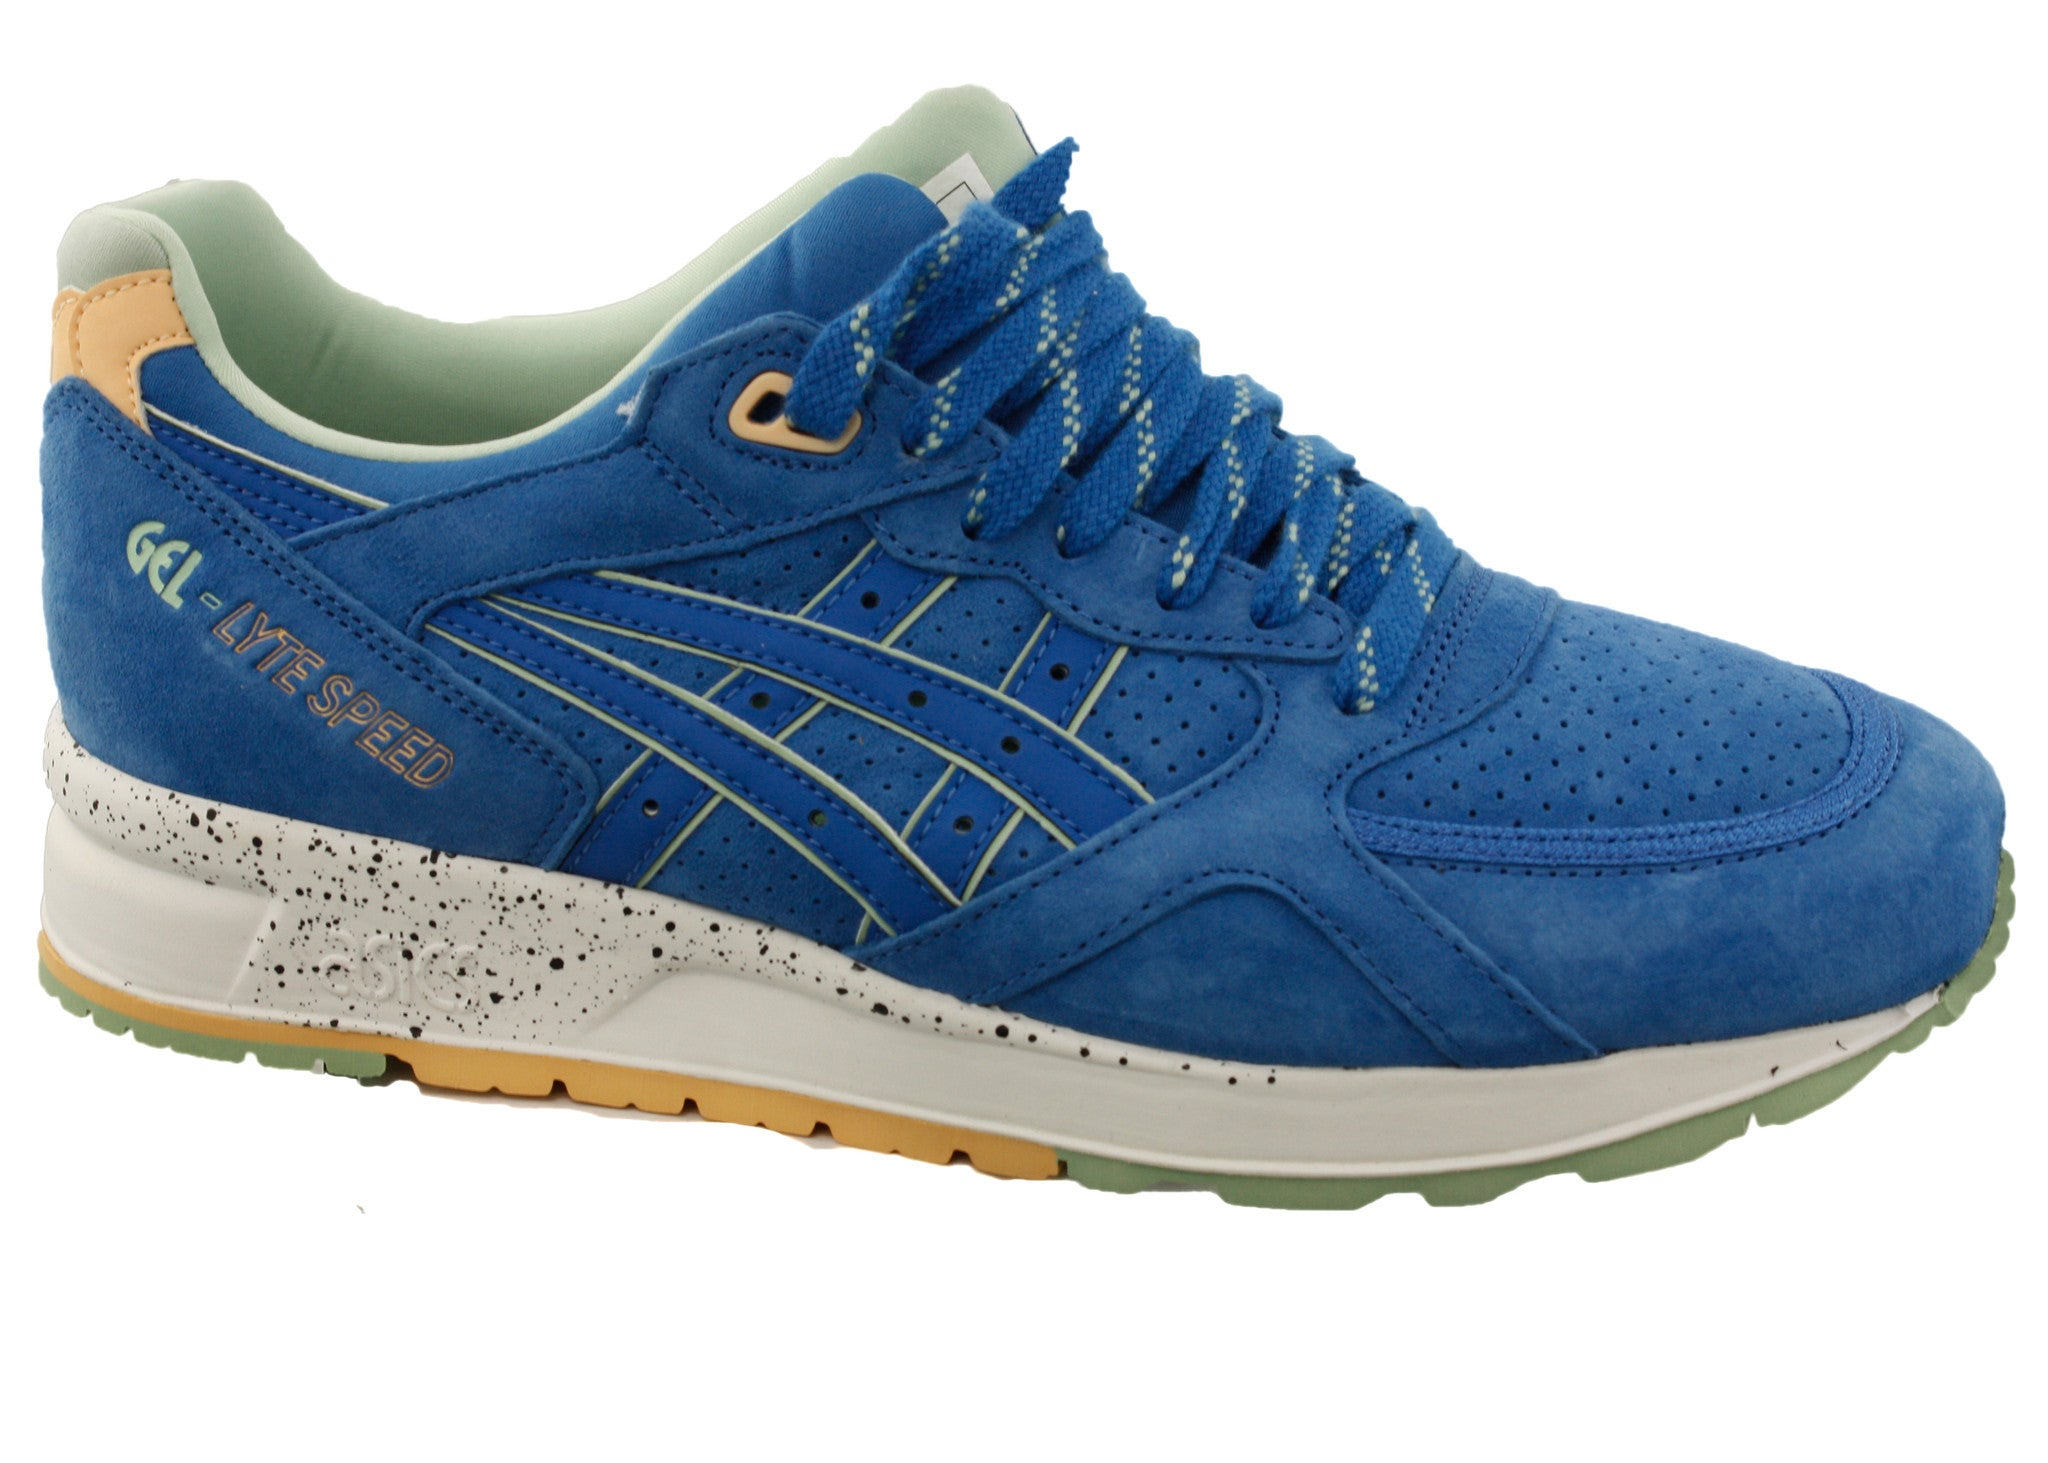 1bc454533bb0 ASICS GEL LYTE SPEED SZ 11 CLASSIC BLUE EASTER PACK – VillageMart